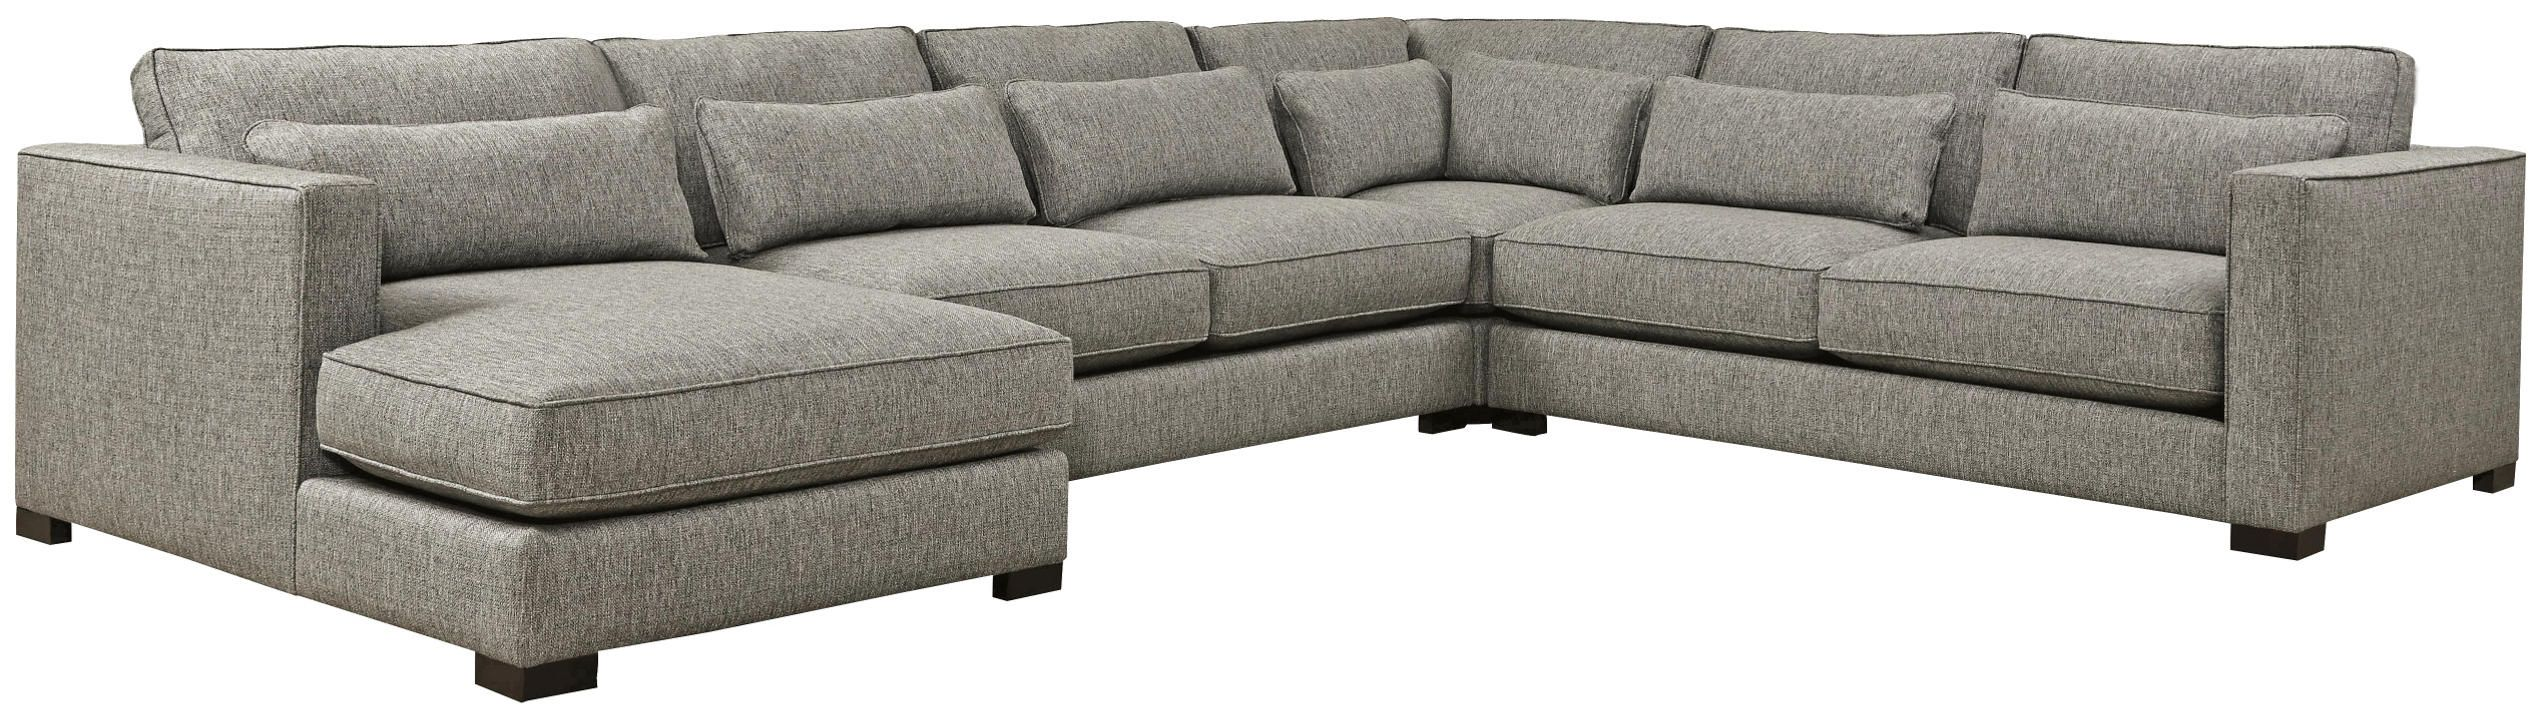 Detroit Sofa Co: Ambassador Sectional Is Very Inviting With A Soft Fabric  And Matching Kidney